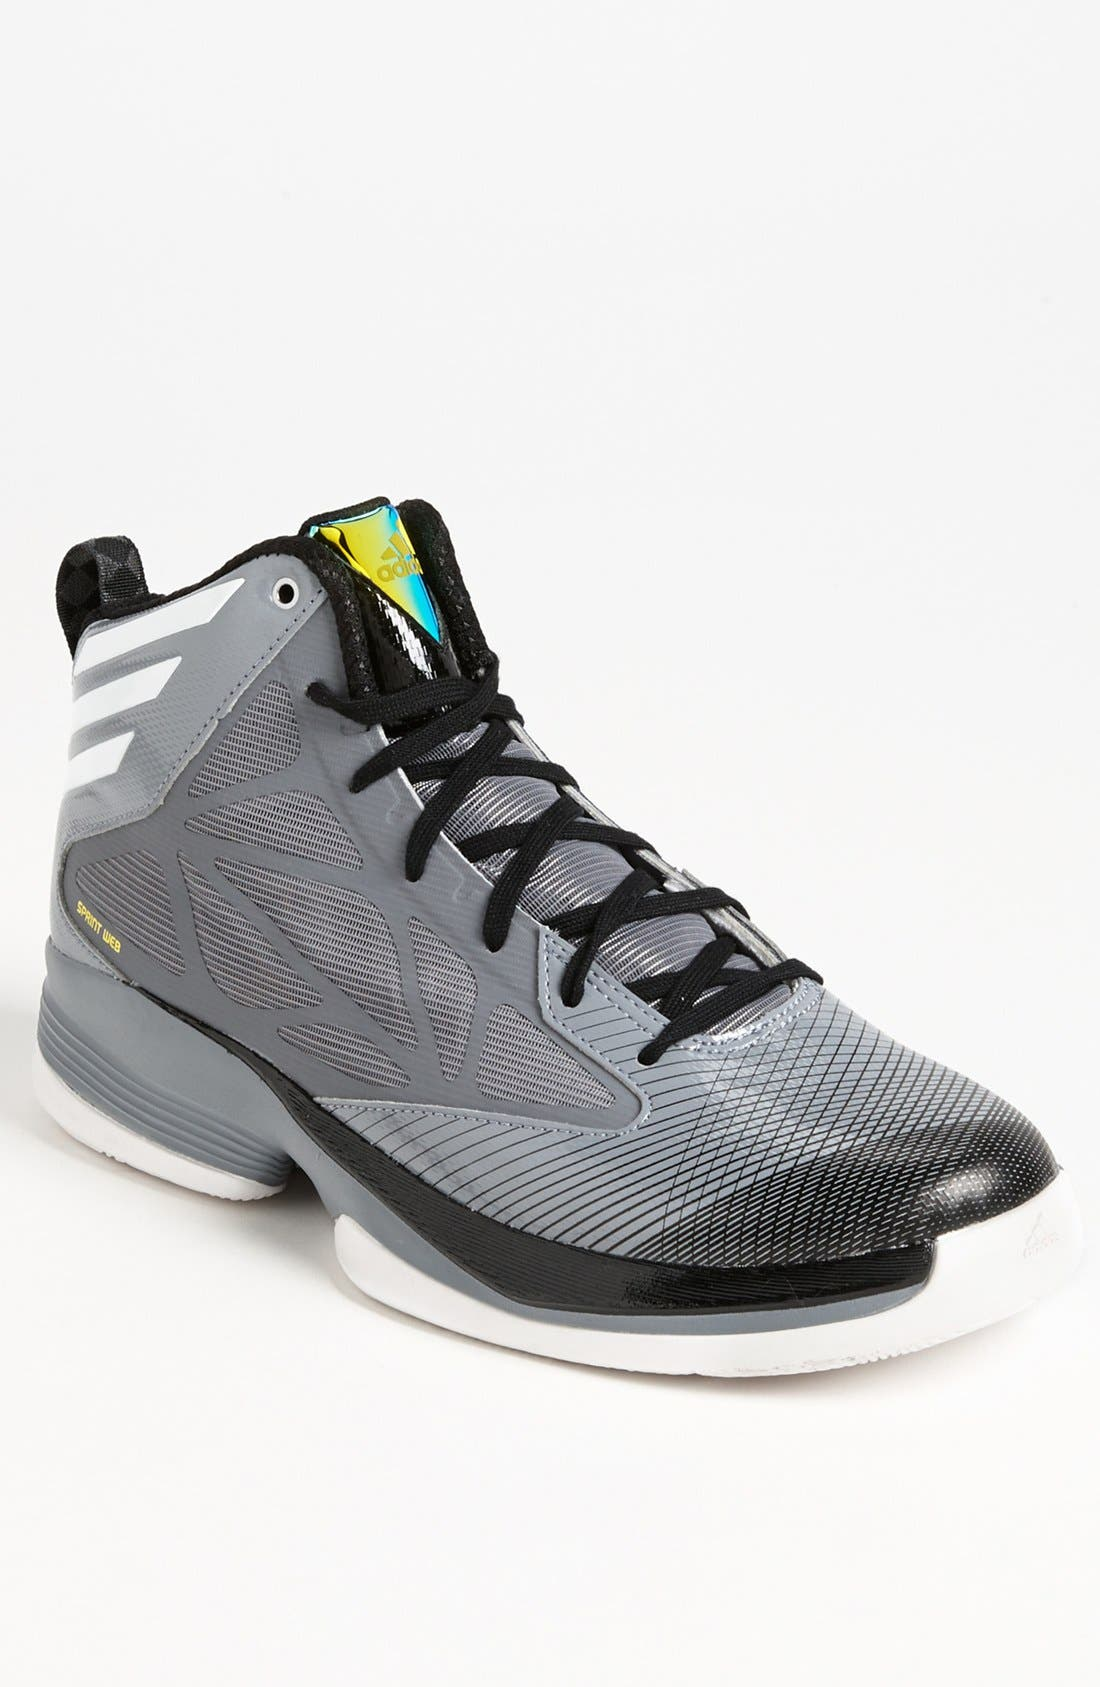 Alternate Image 1 Selected - adidas 'Crazy Fast' Basketball Shoe (Men)